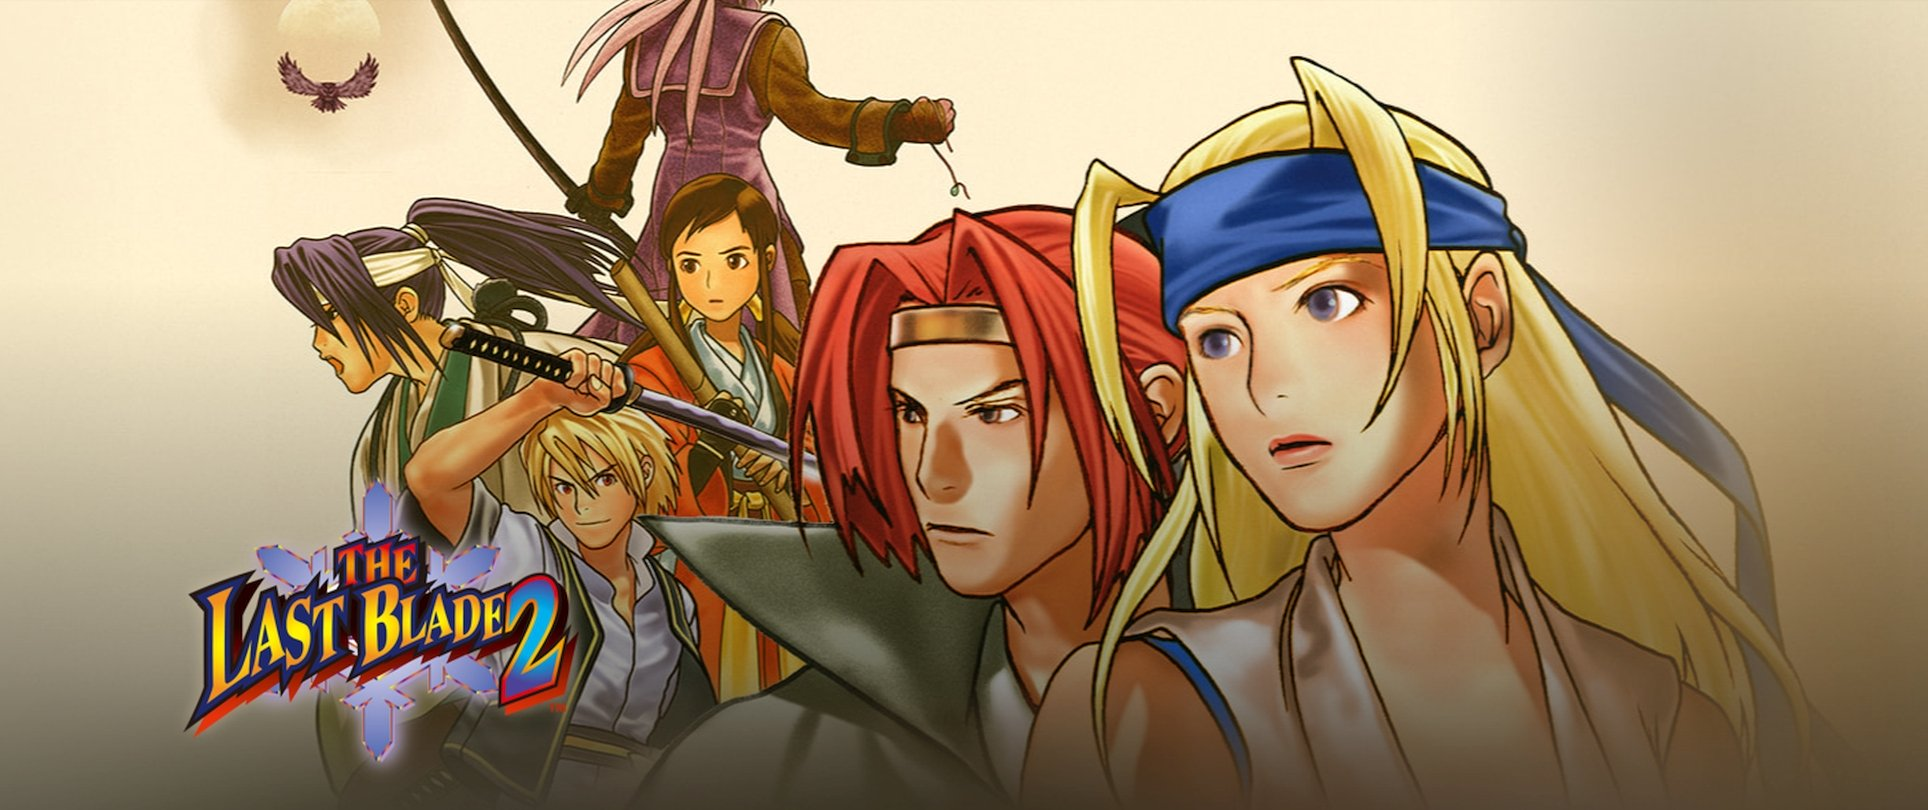 Eight More Popular SNK Titles Added To Prime Gaming Including The Last Blade 2 And Garou: Mark Of The Wolves